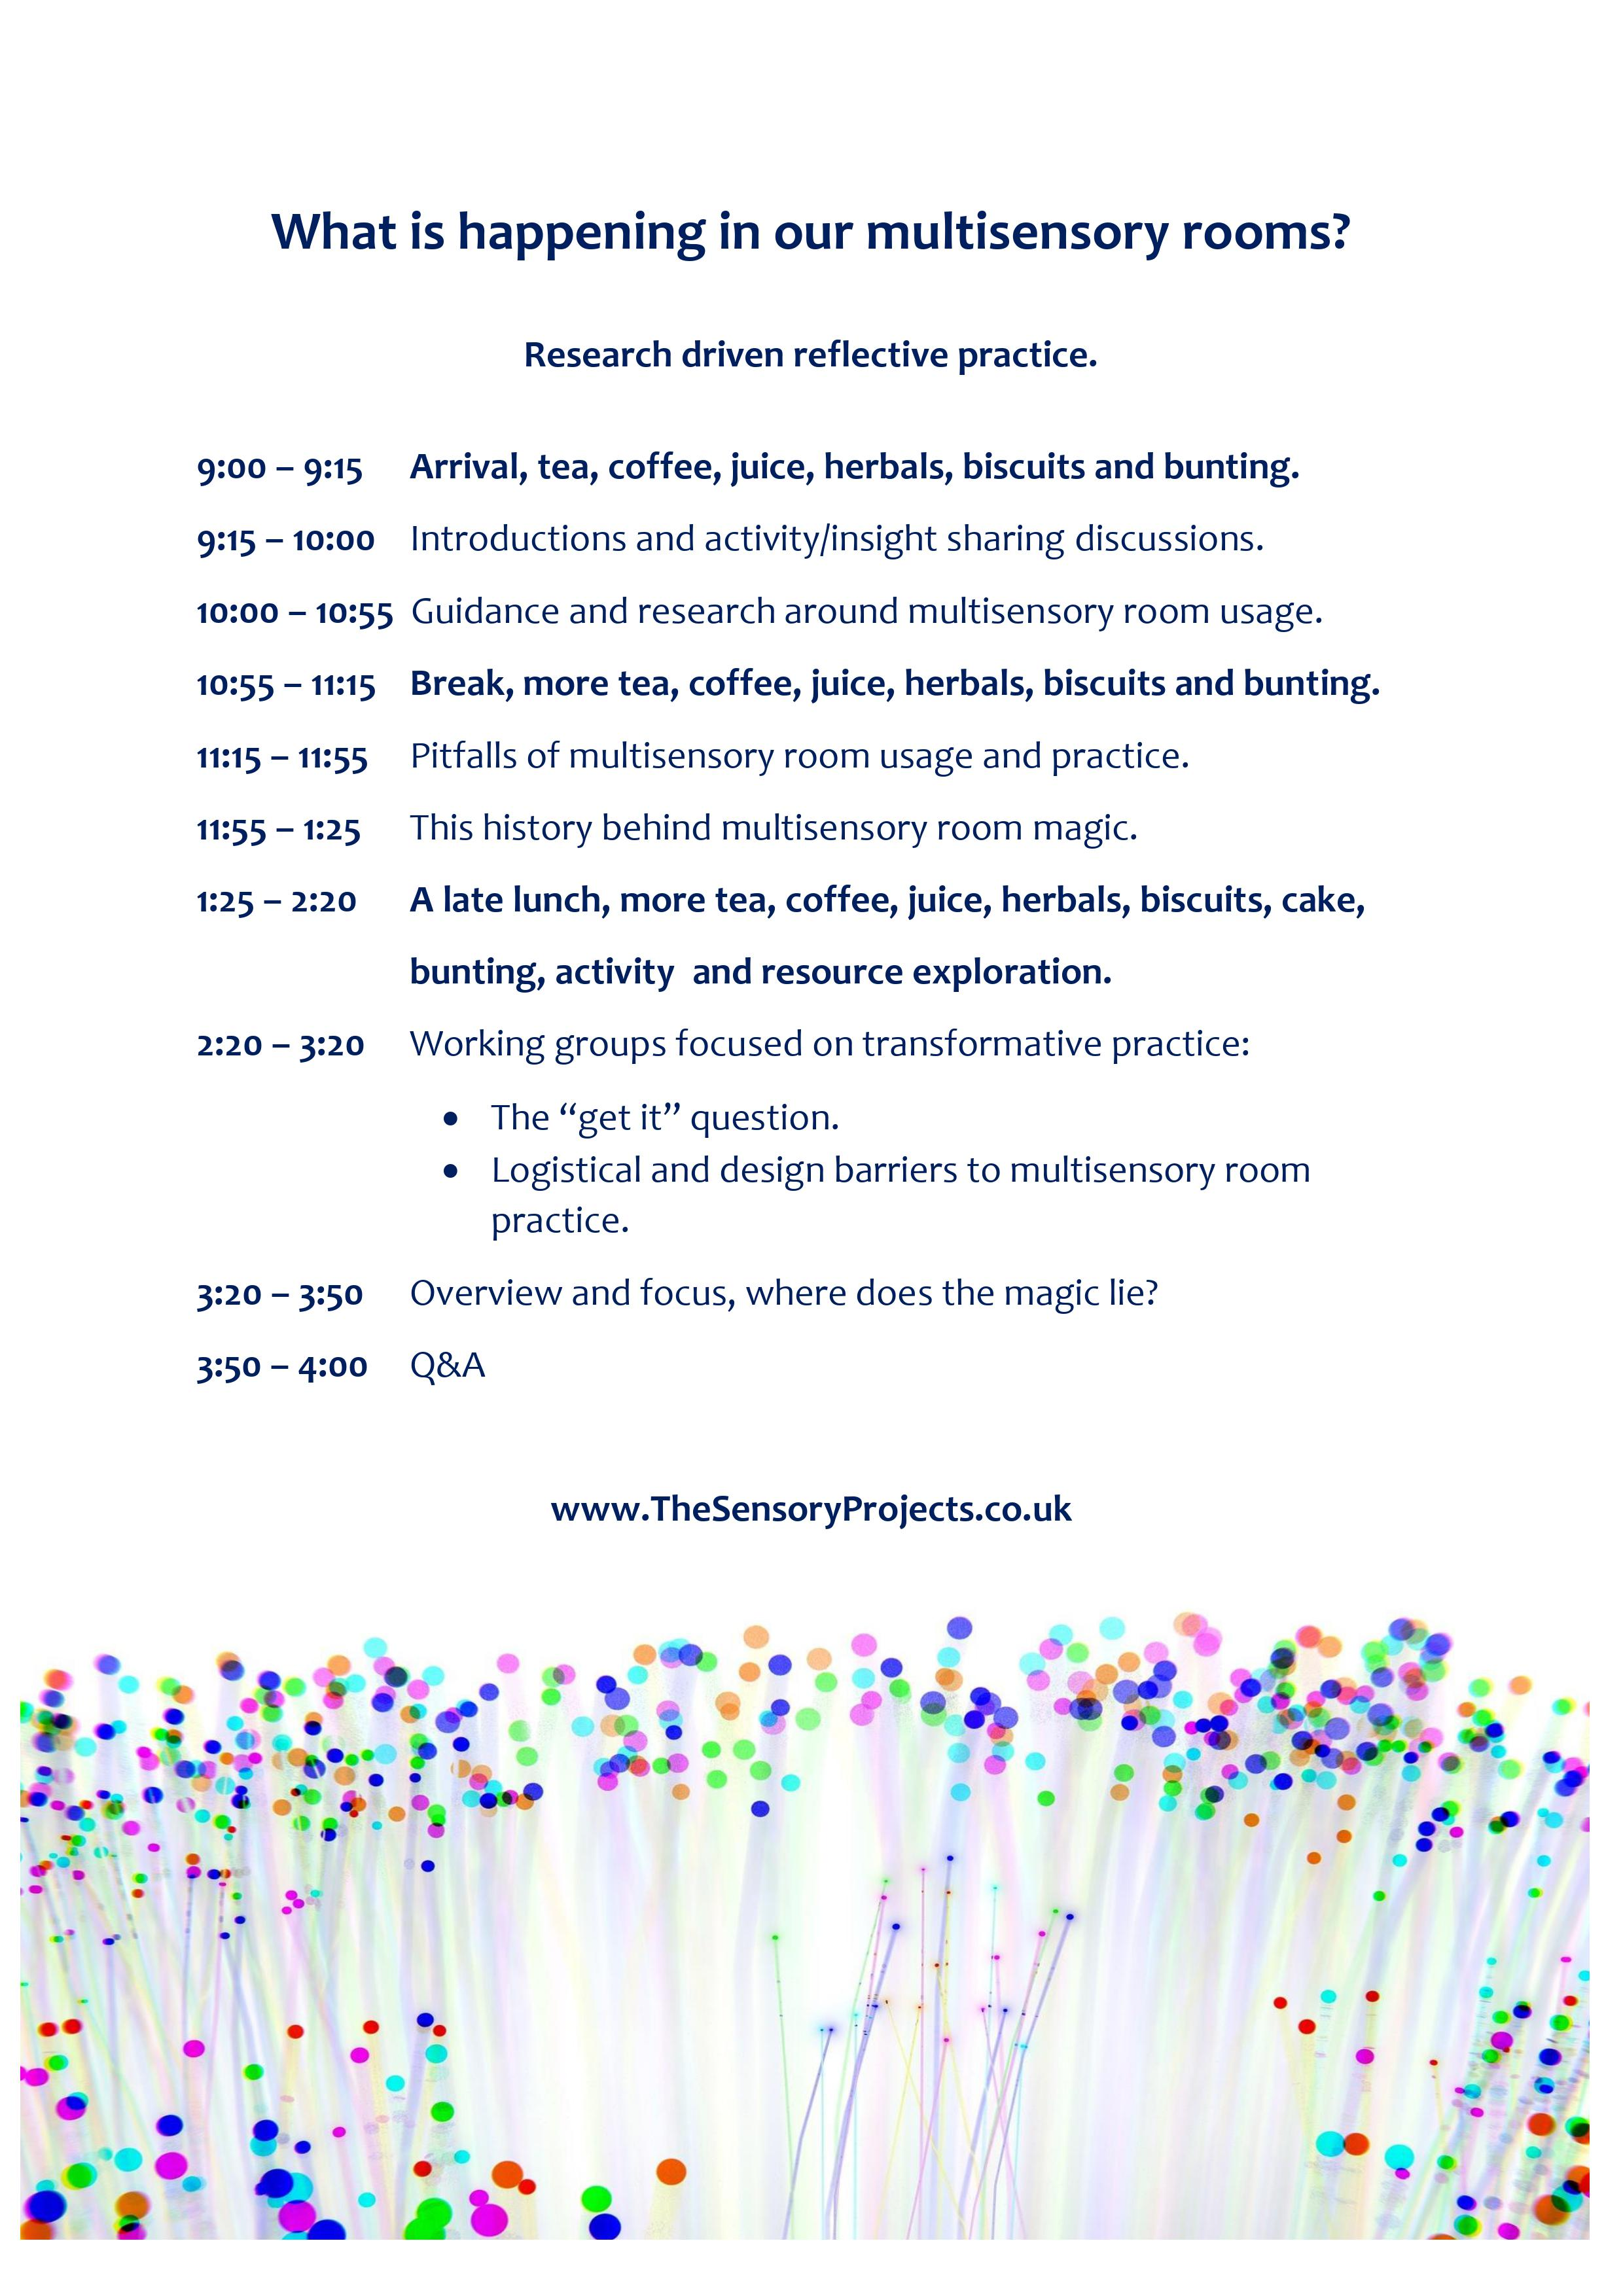 agenda for the day - email sensorystory@gmail.com for a version in WORD